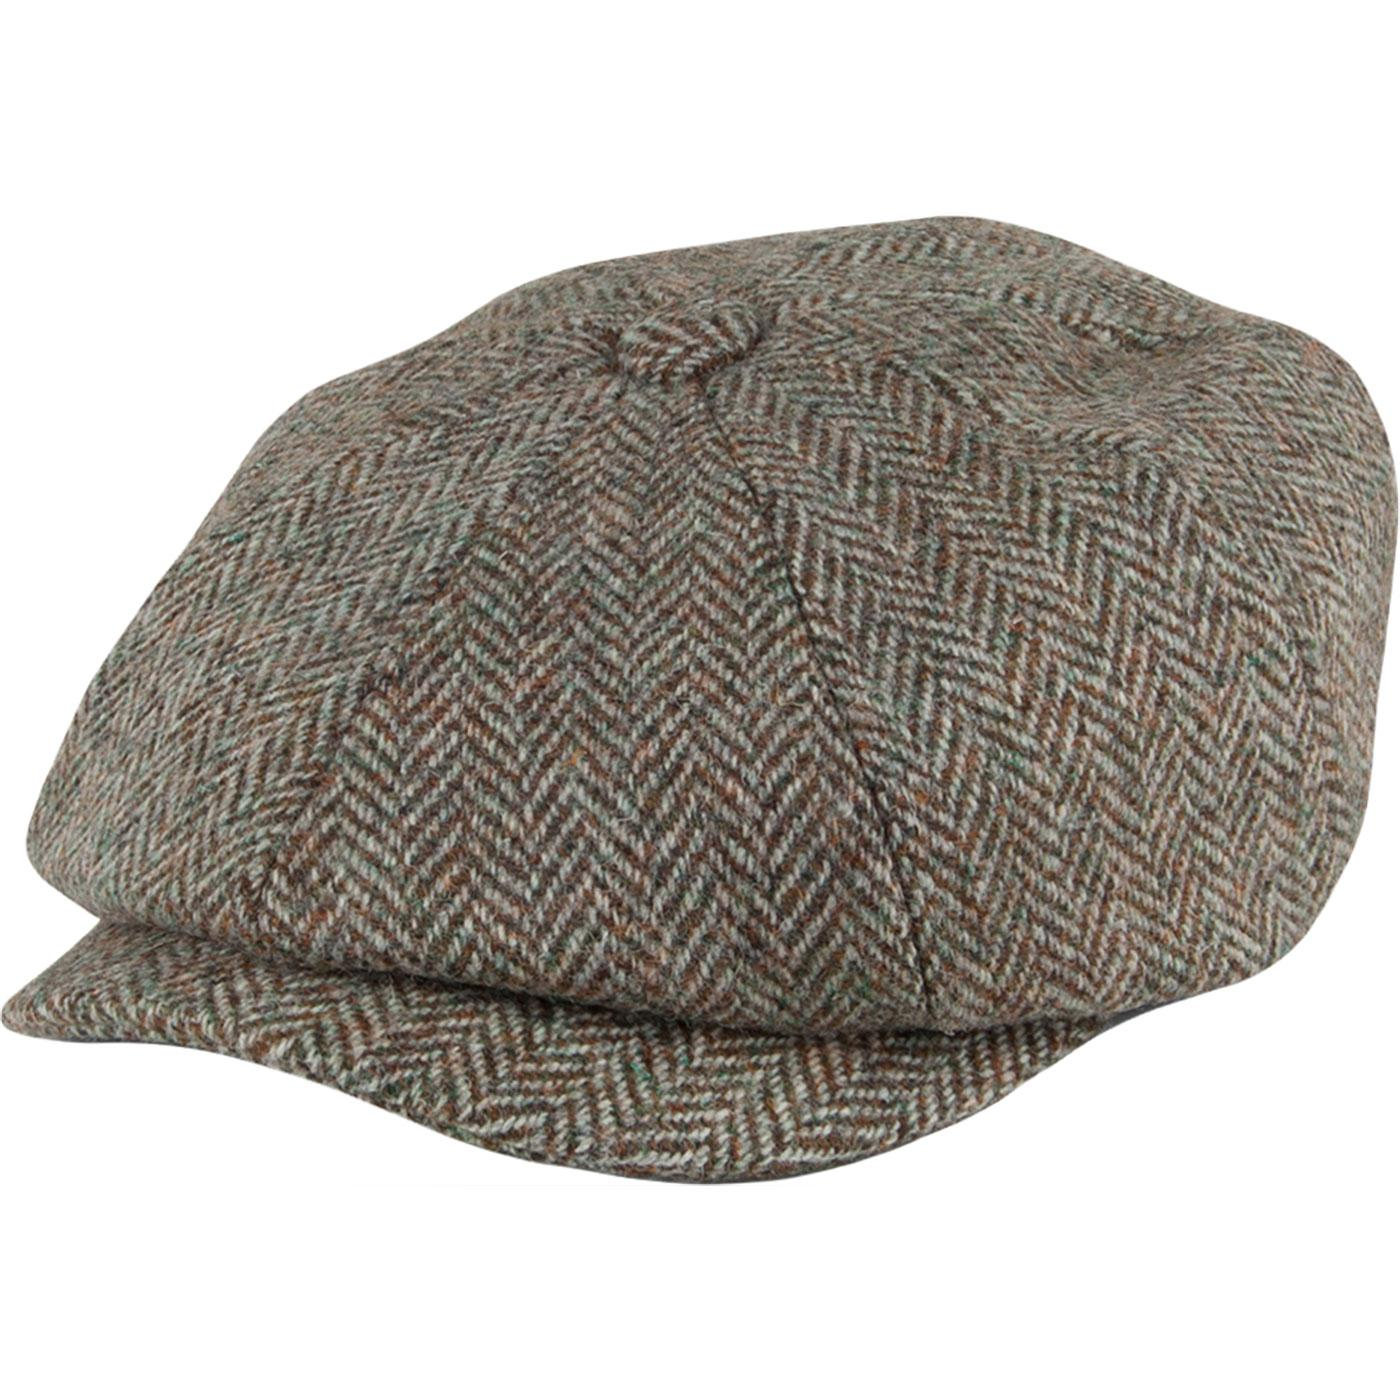 Carloway Harris Tweed FAILSWORTH Gatsby Cap - GREY